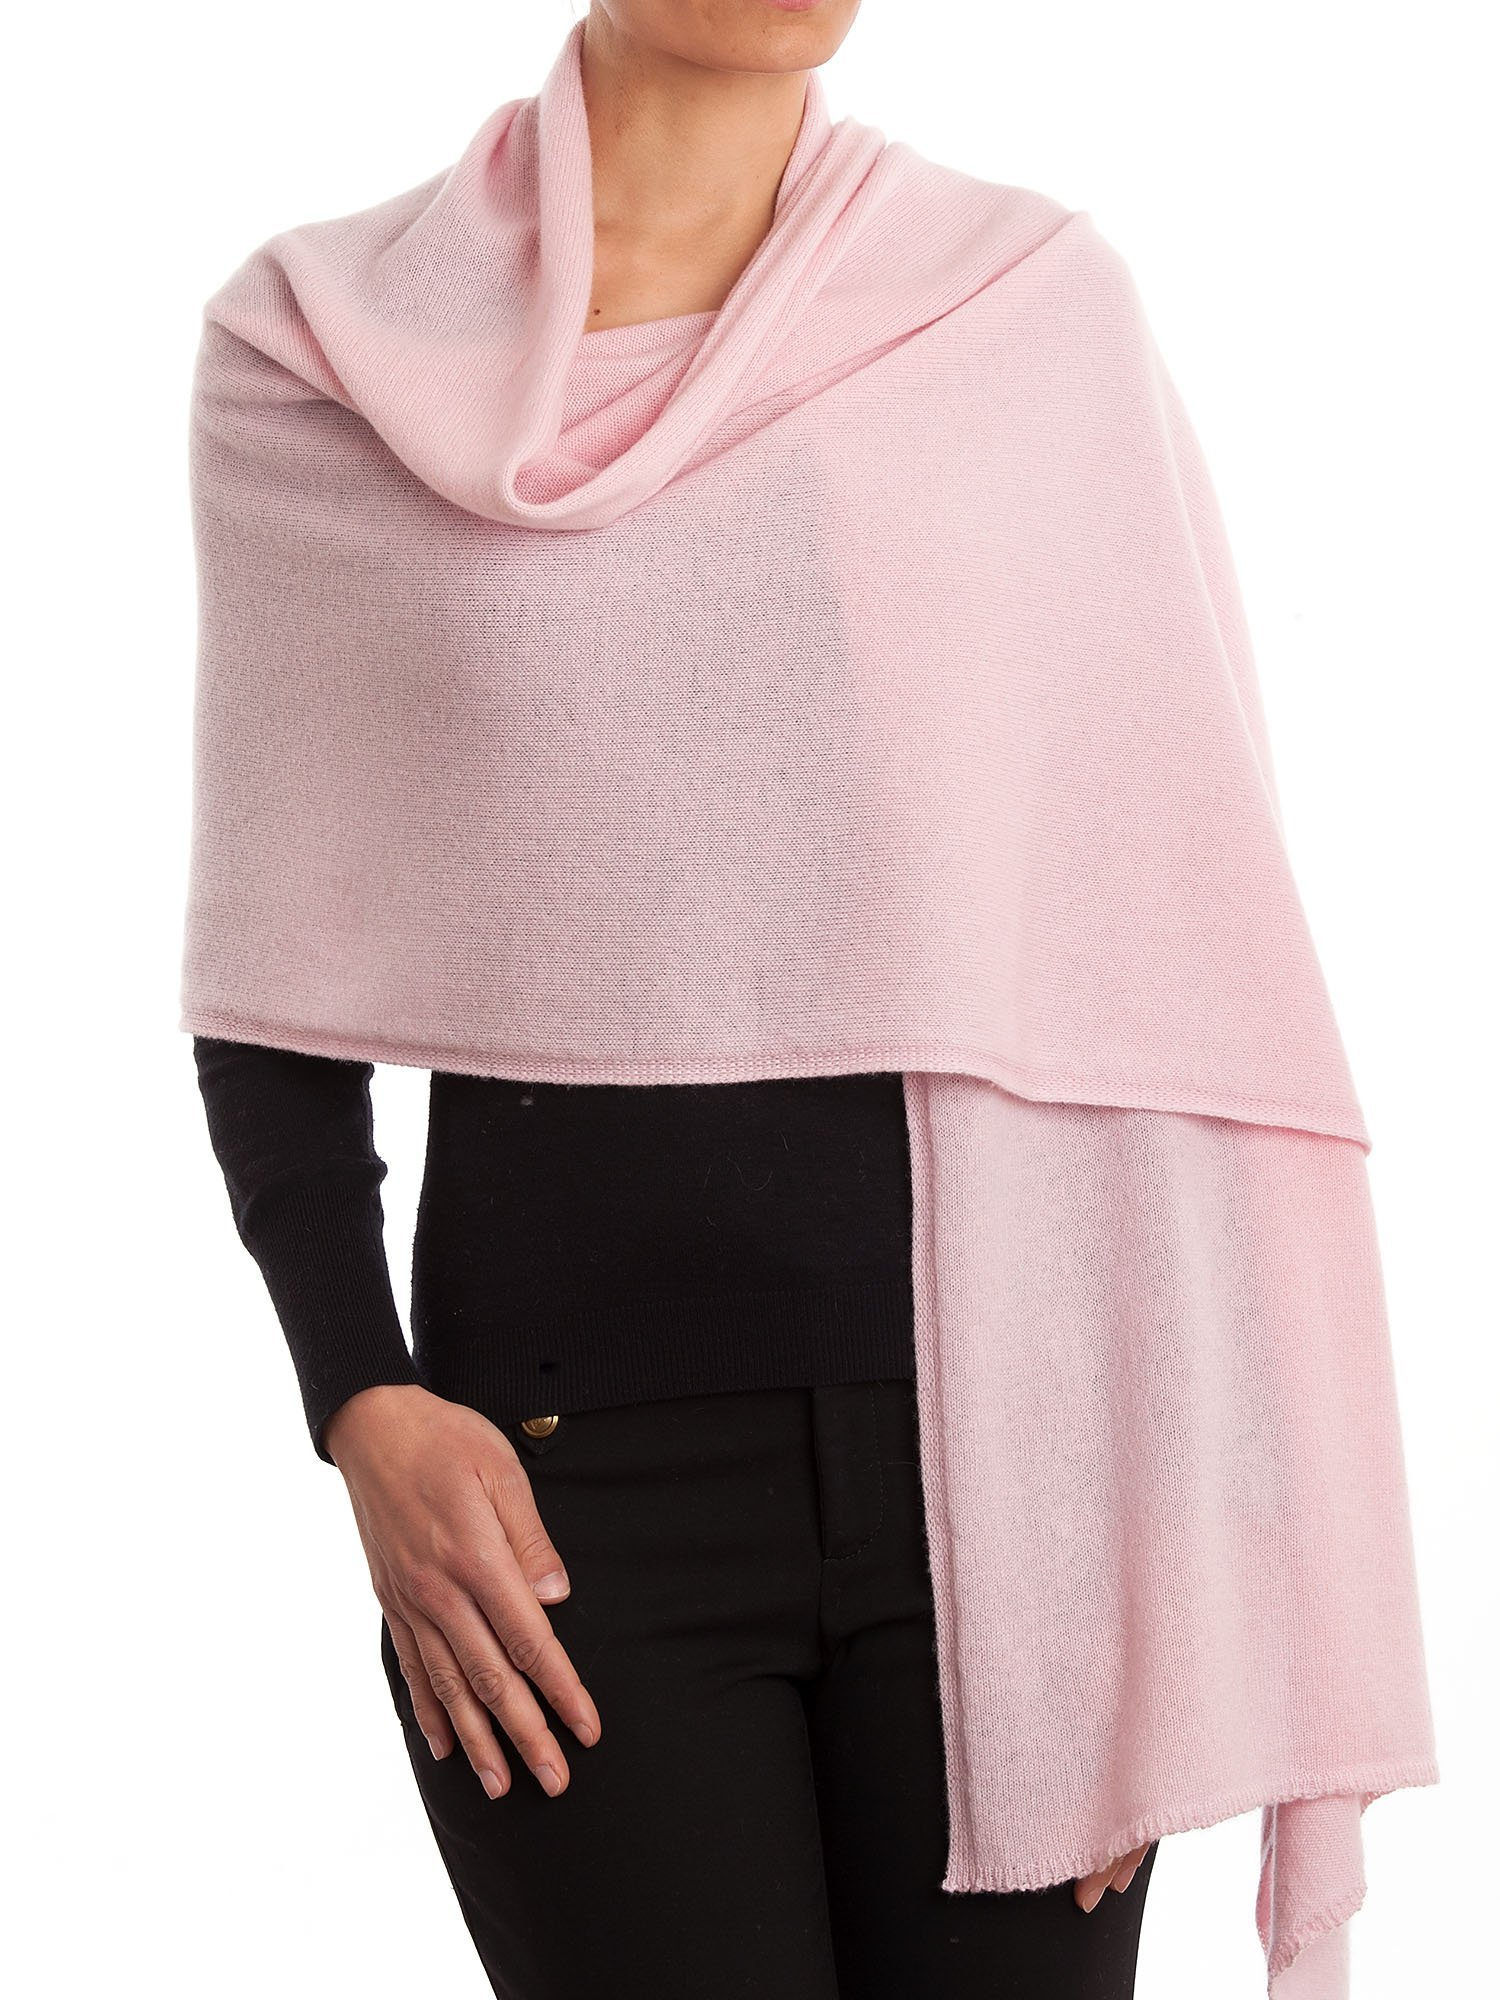 Dalle Piane Cashmere - Stole 100% cashmere - Made in Italy, Color: Pink, One size